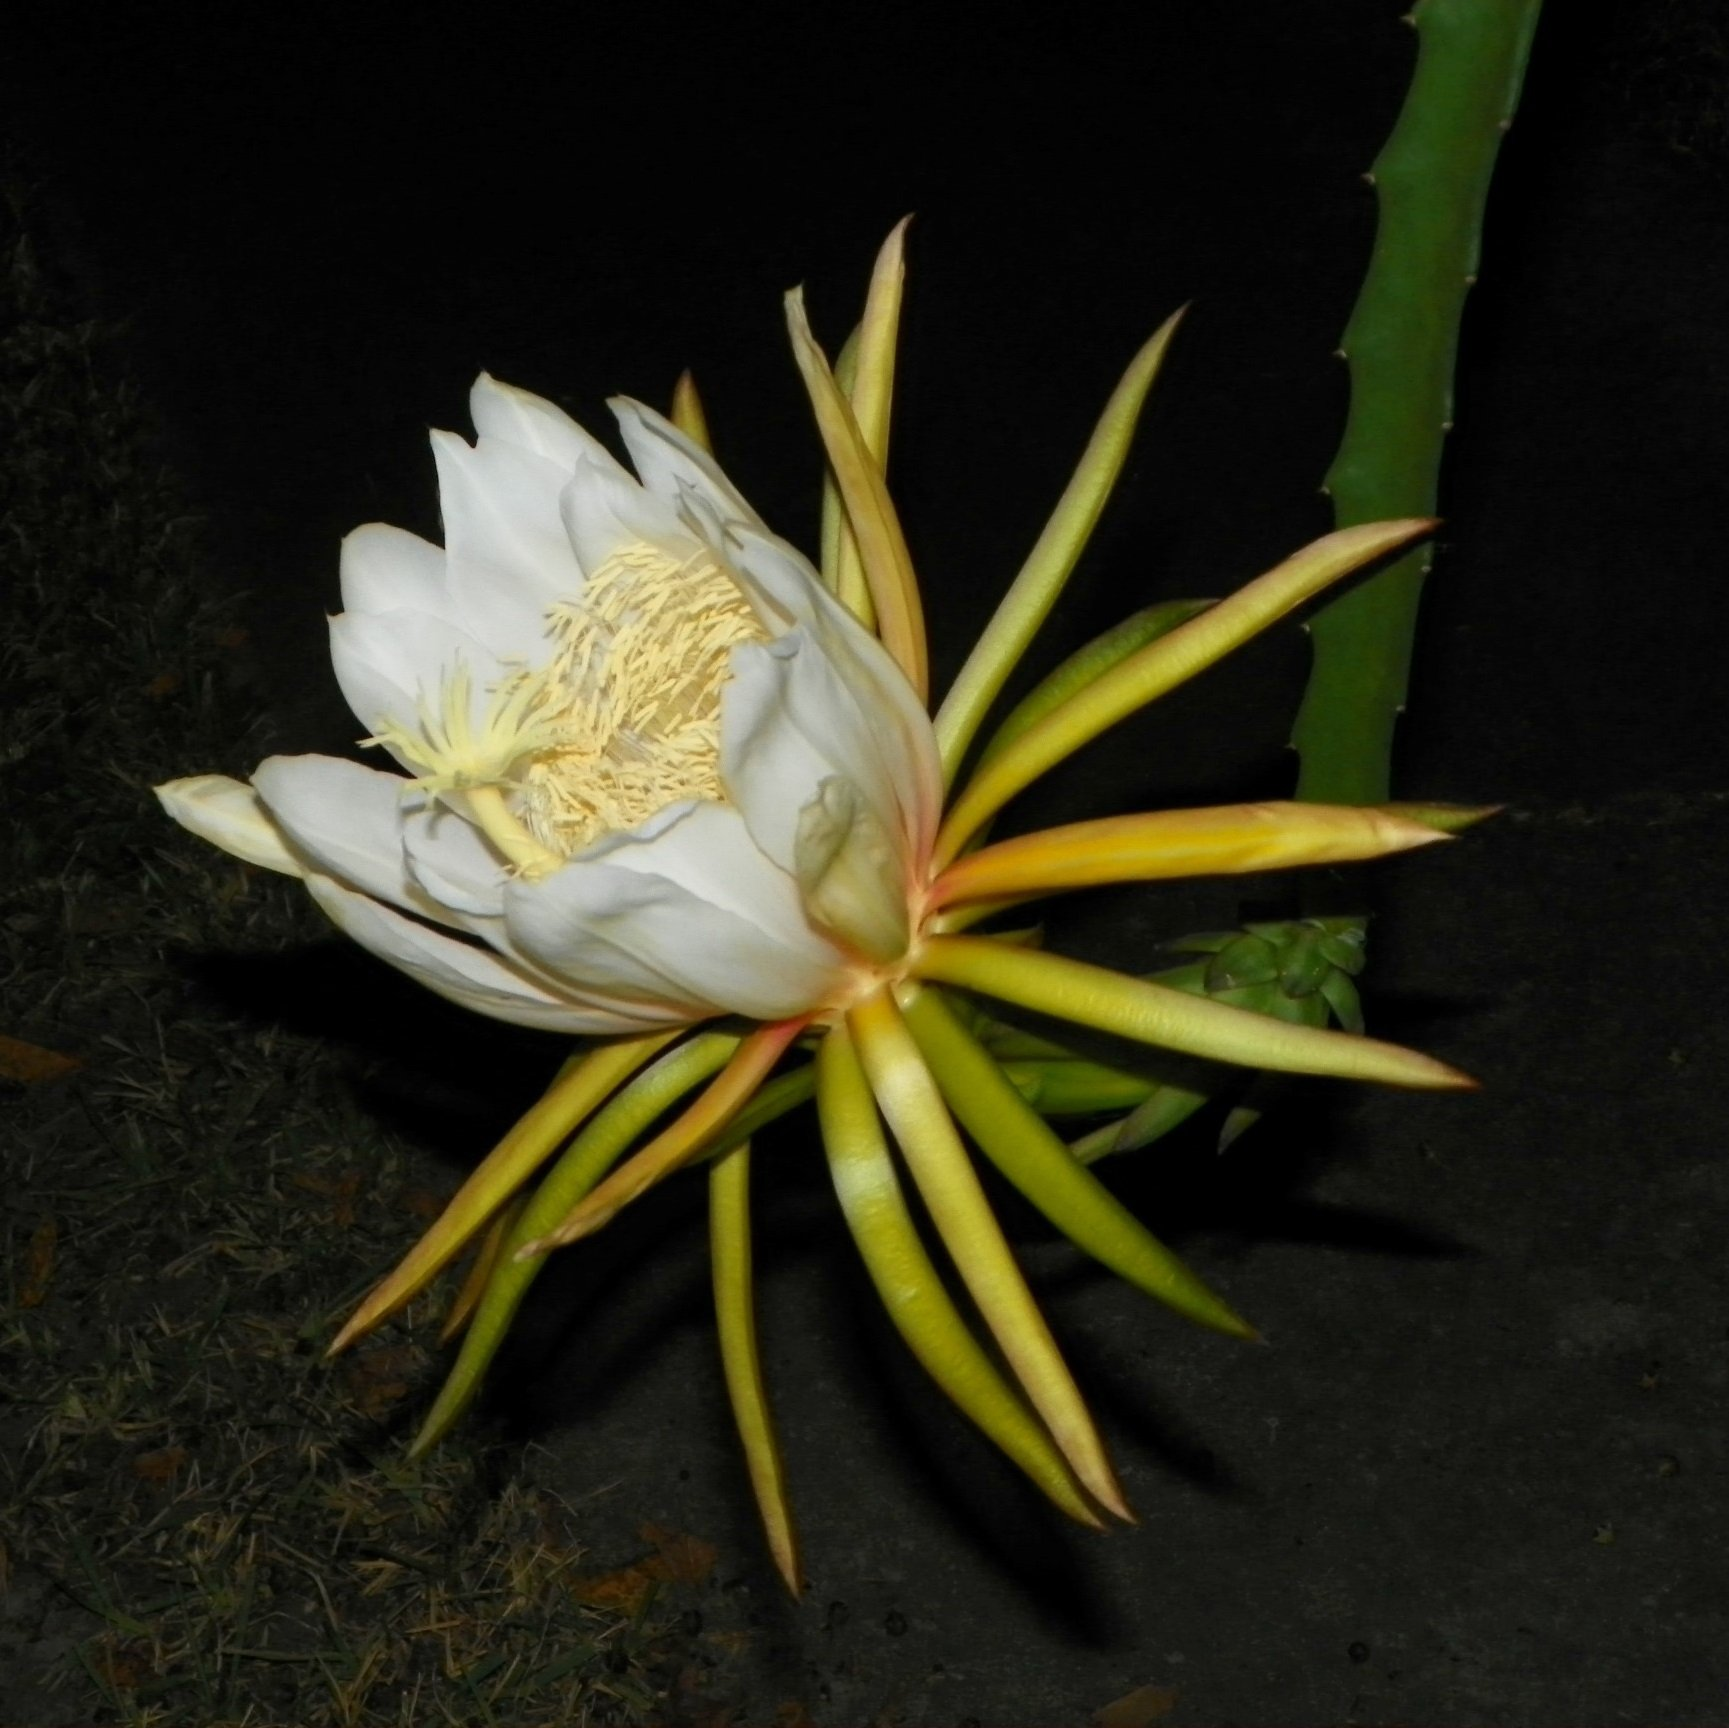 Dragon Fruit variety Hana flower